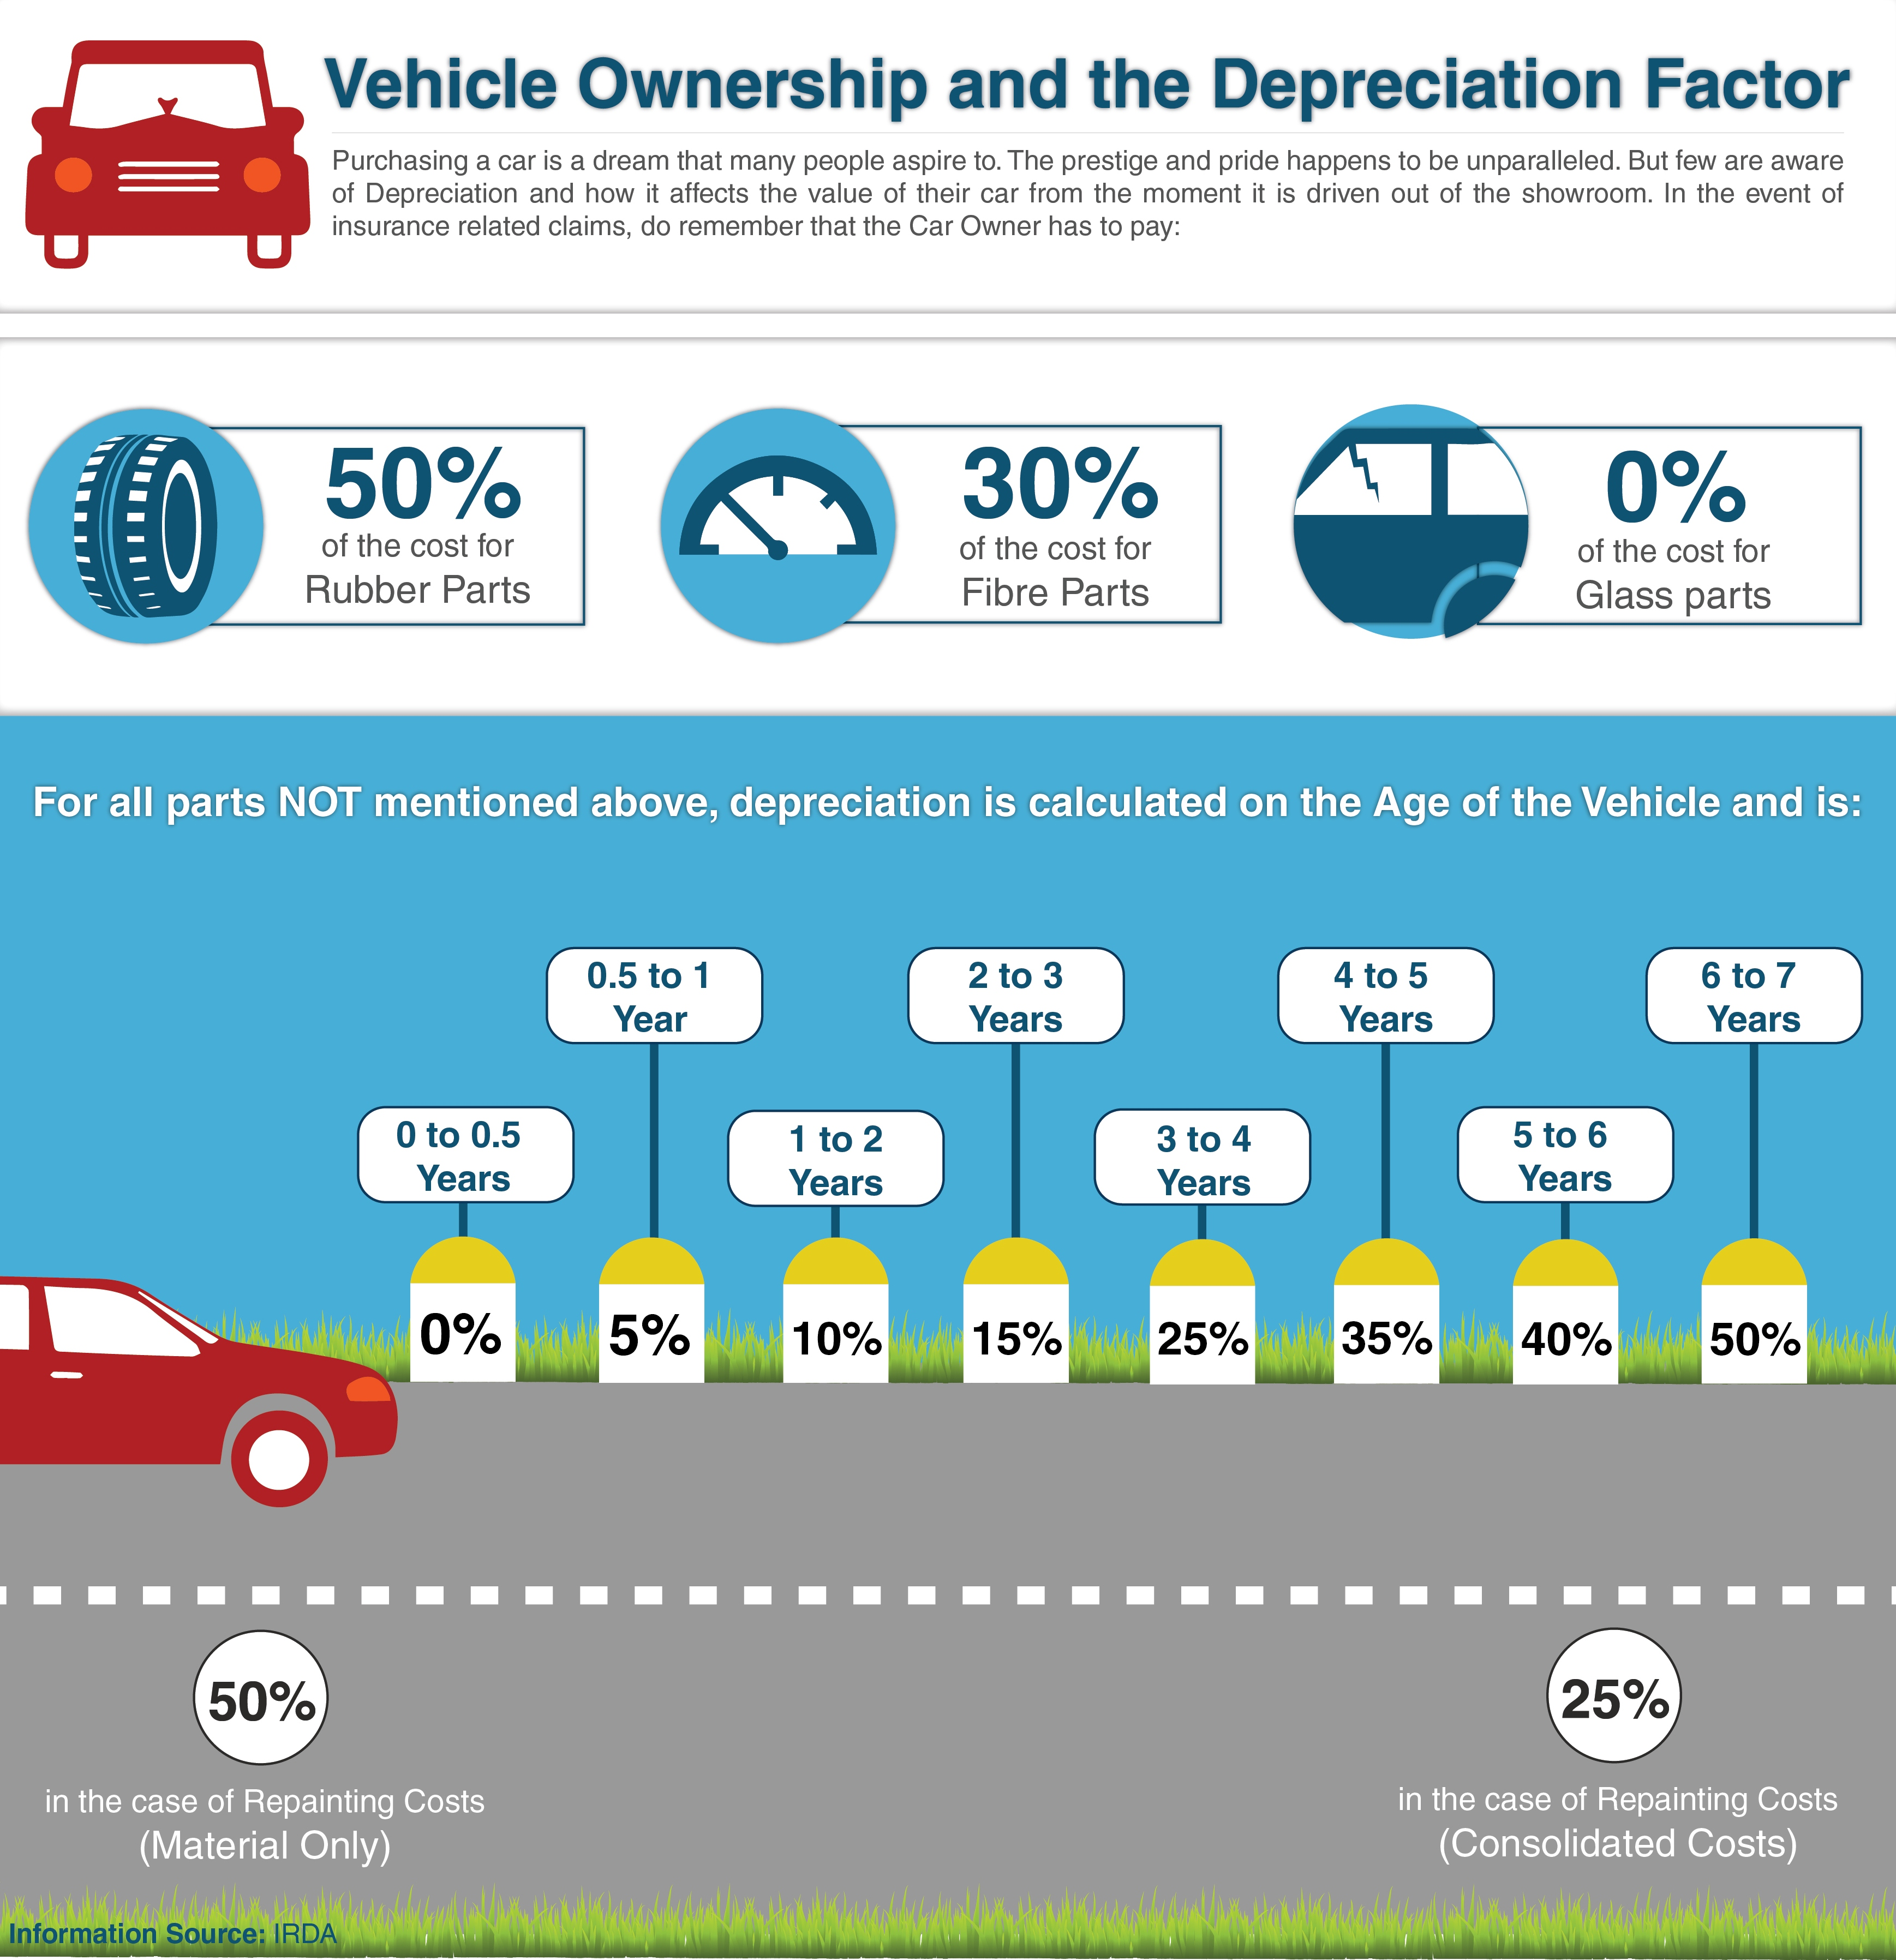 Vehicle Insurance and Depreciation Factor